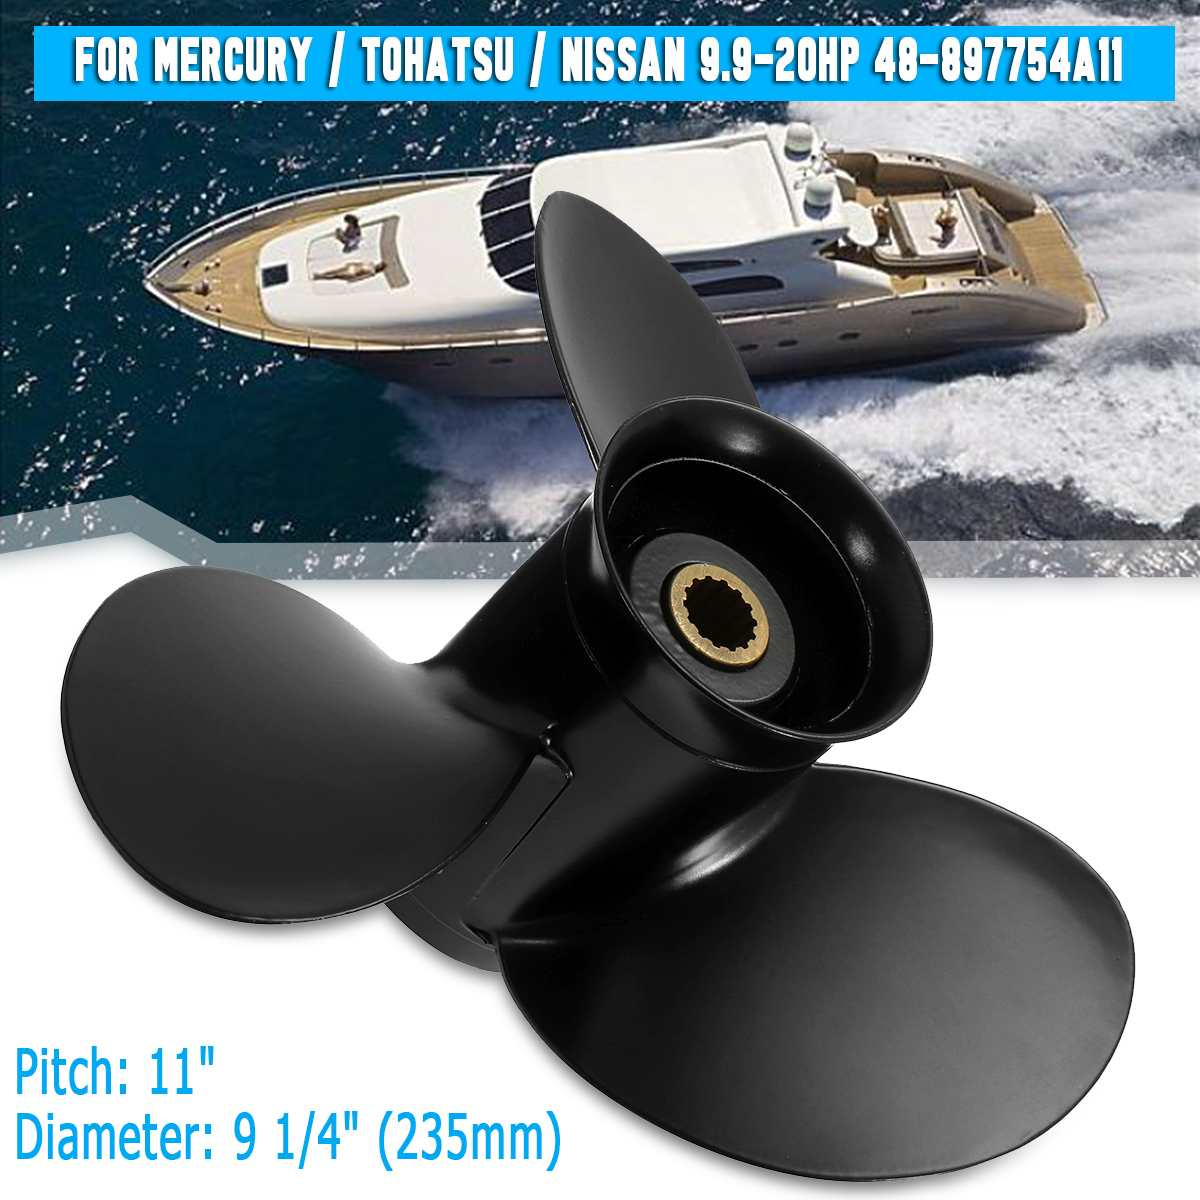 For Mercury/Tohatsu/Nissan 9.9-20HP 9.25 X 11 Outboard Propeller 48-897754A11 Aluminum Marine Propeller 14 Spline Tooth 3 Blades